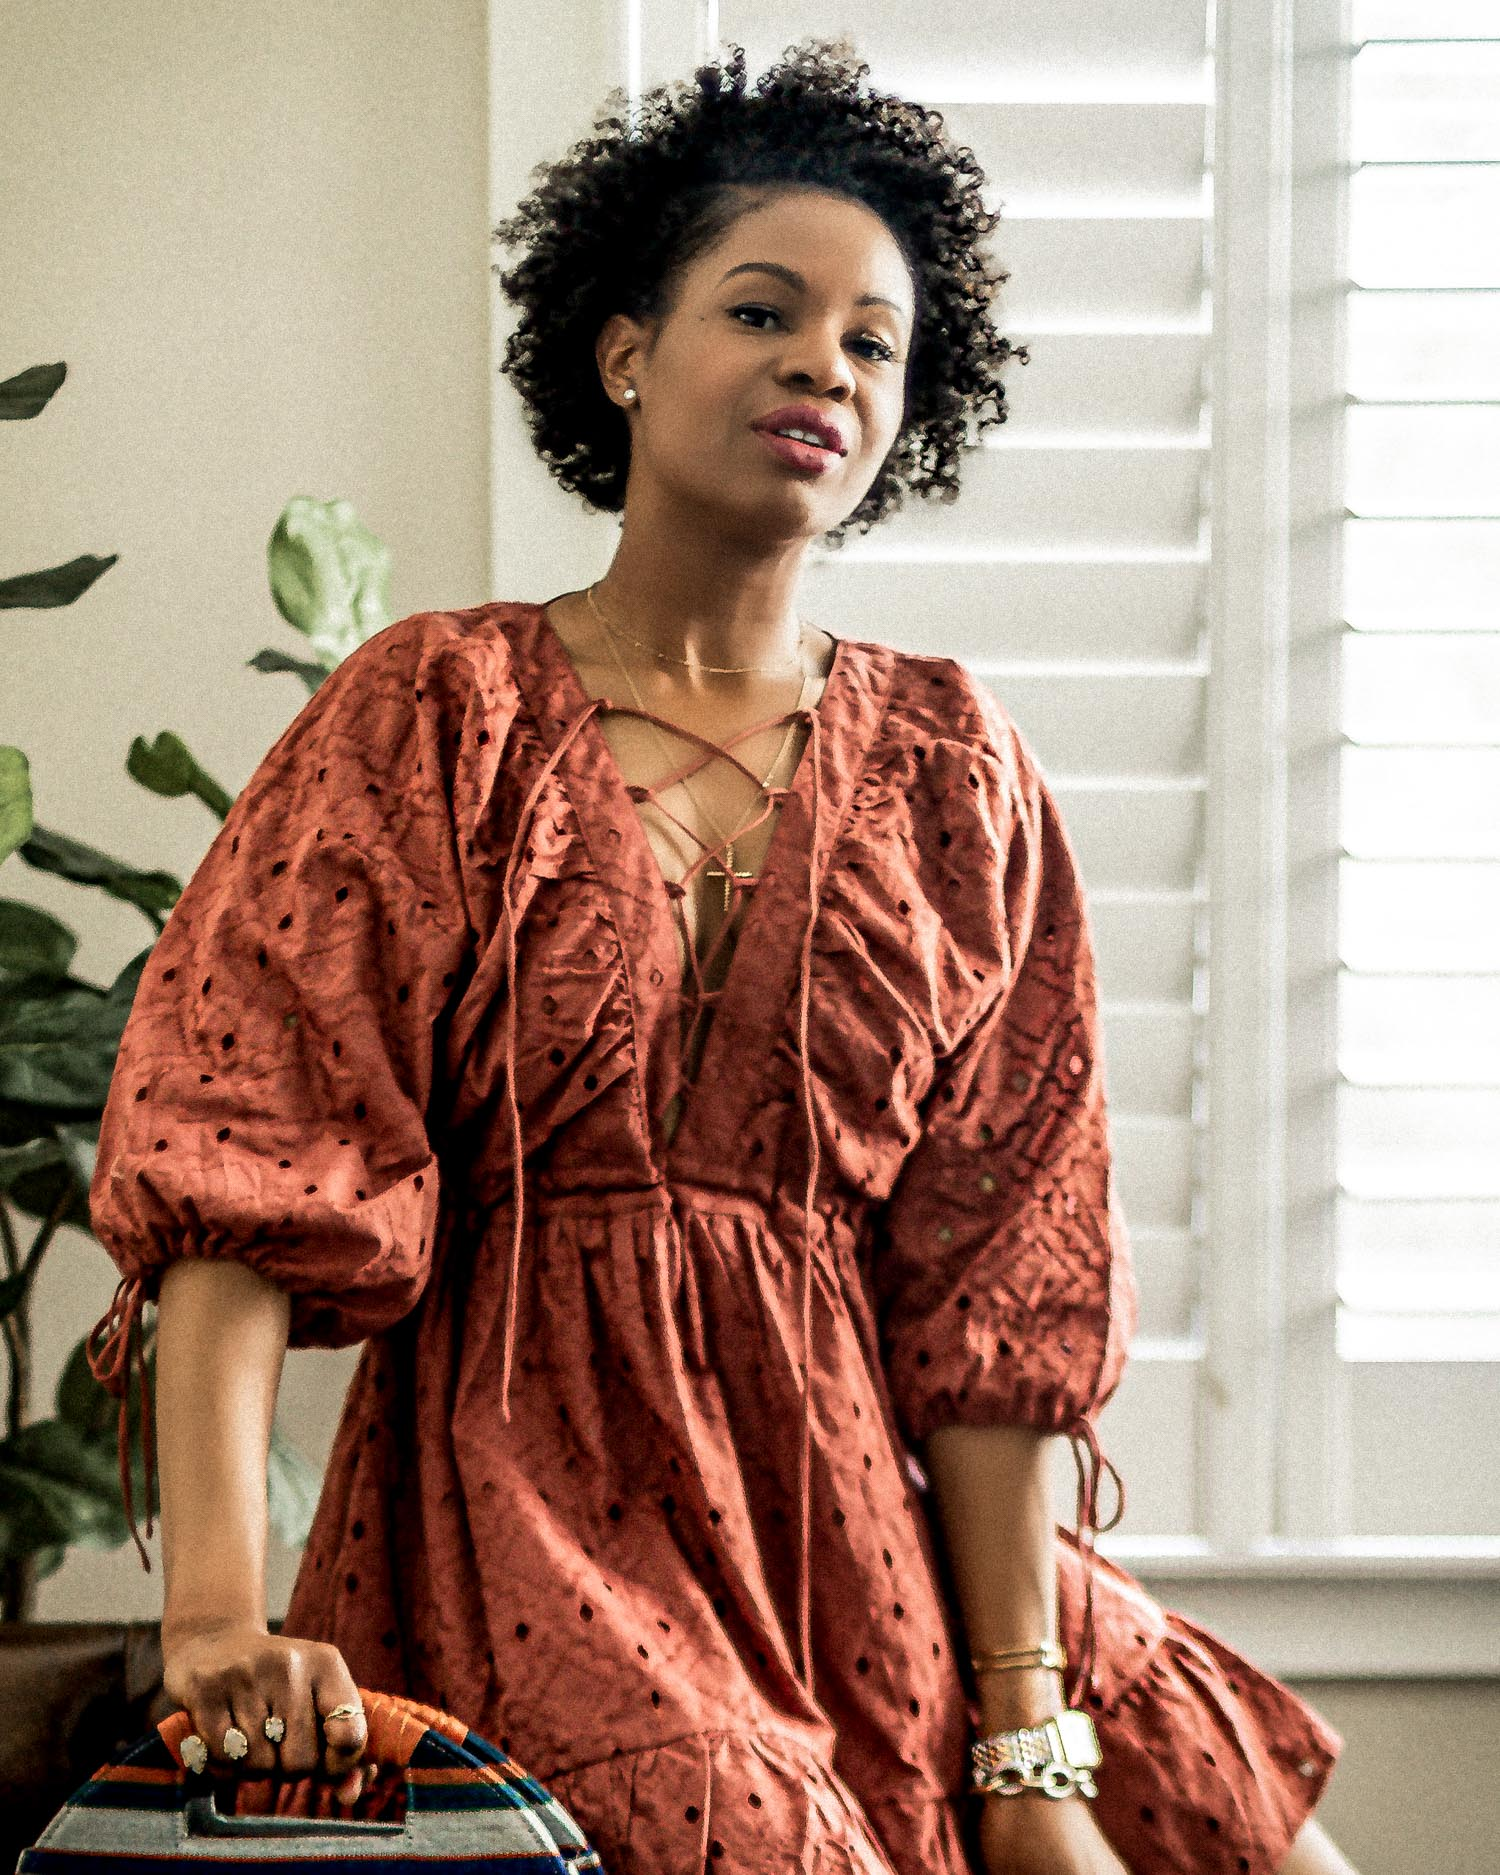 atlanta fashion blogger wearing red asos spring smock dress shares beauty secerts, here are the products I used to avoid wrinkles at 40, anti-aging, how to avoid wrinkles, what to do to avoid wrinkles at 40, no wrinkles at 40 this is what I use, best skincare products